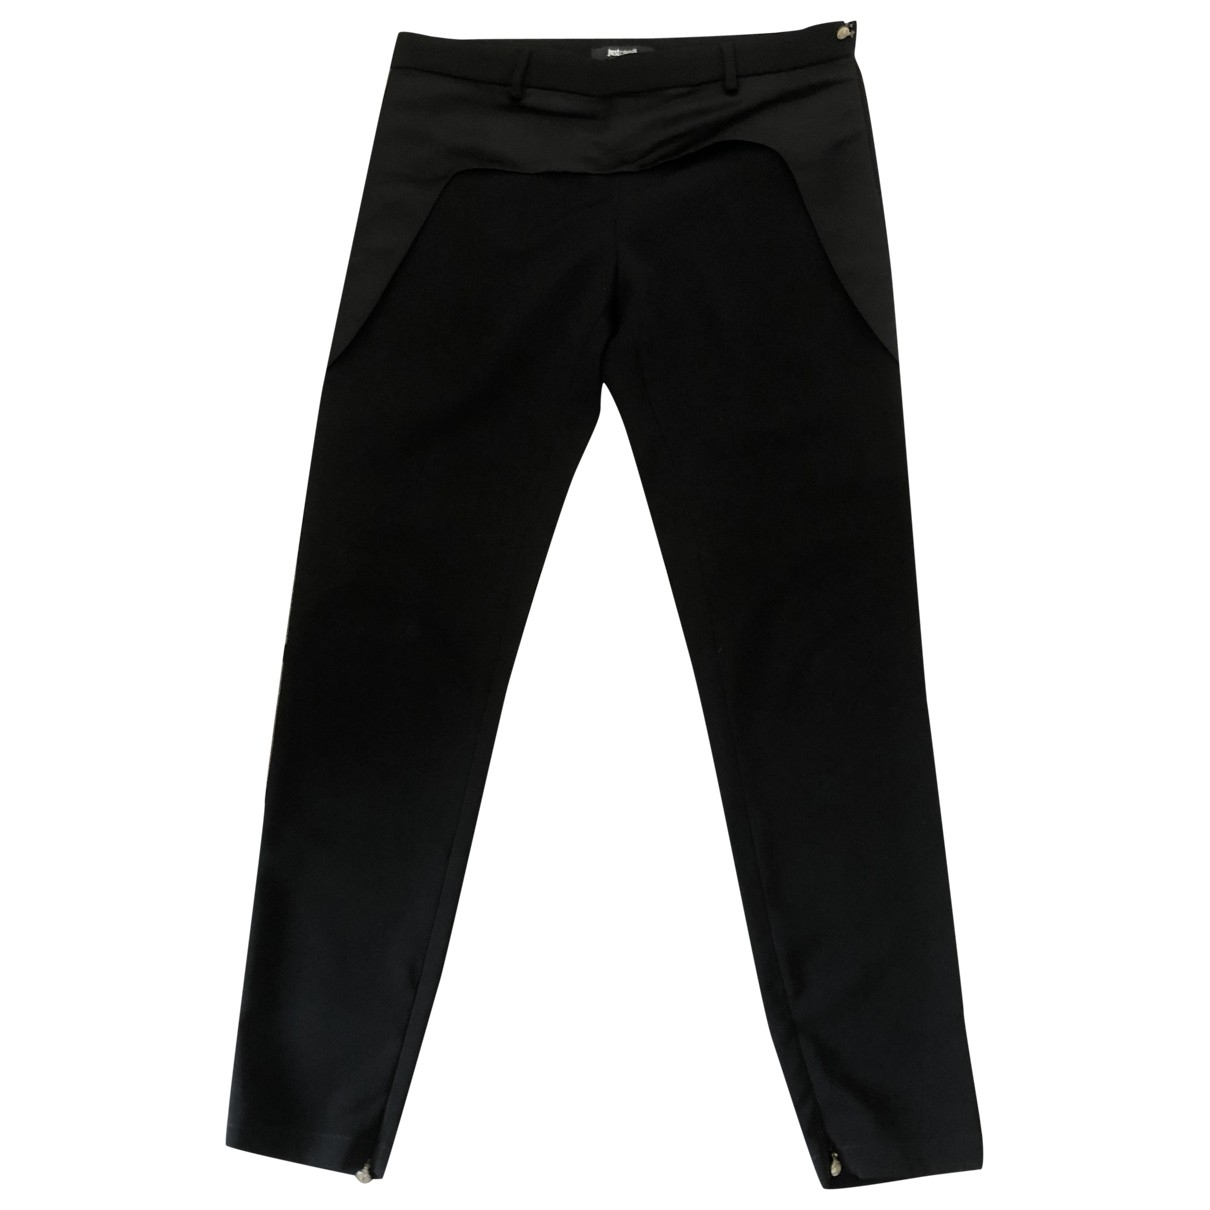 Just Cavalli \N Black Trousers for Women 40 IT